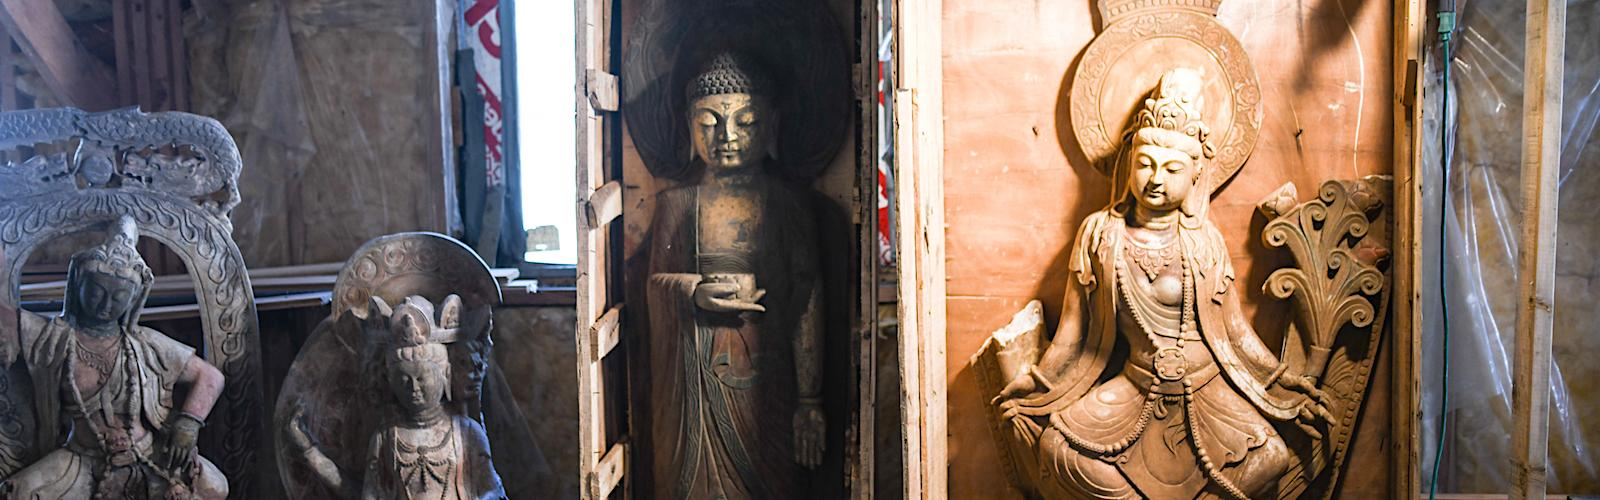 A collection of Buddha statues